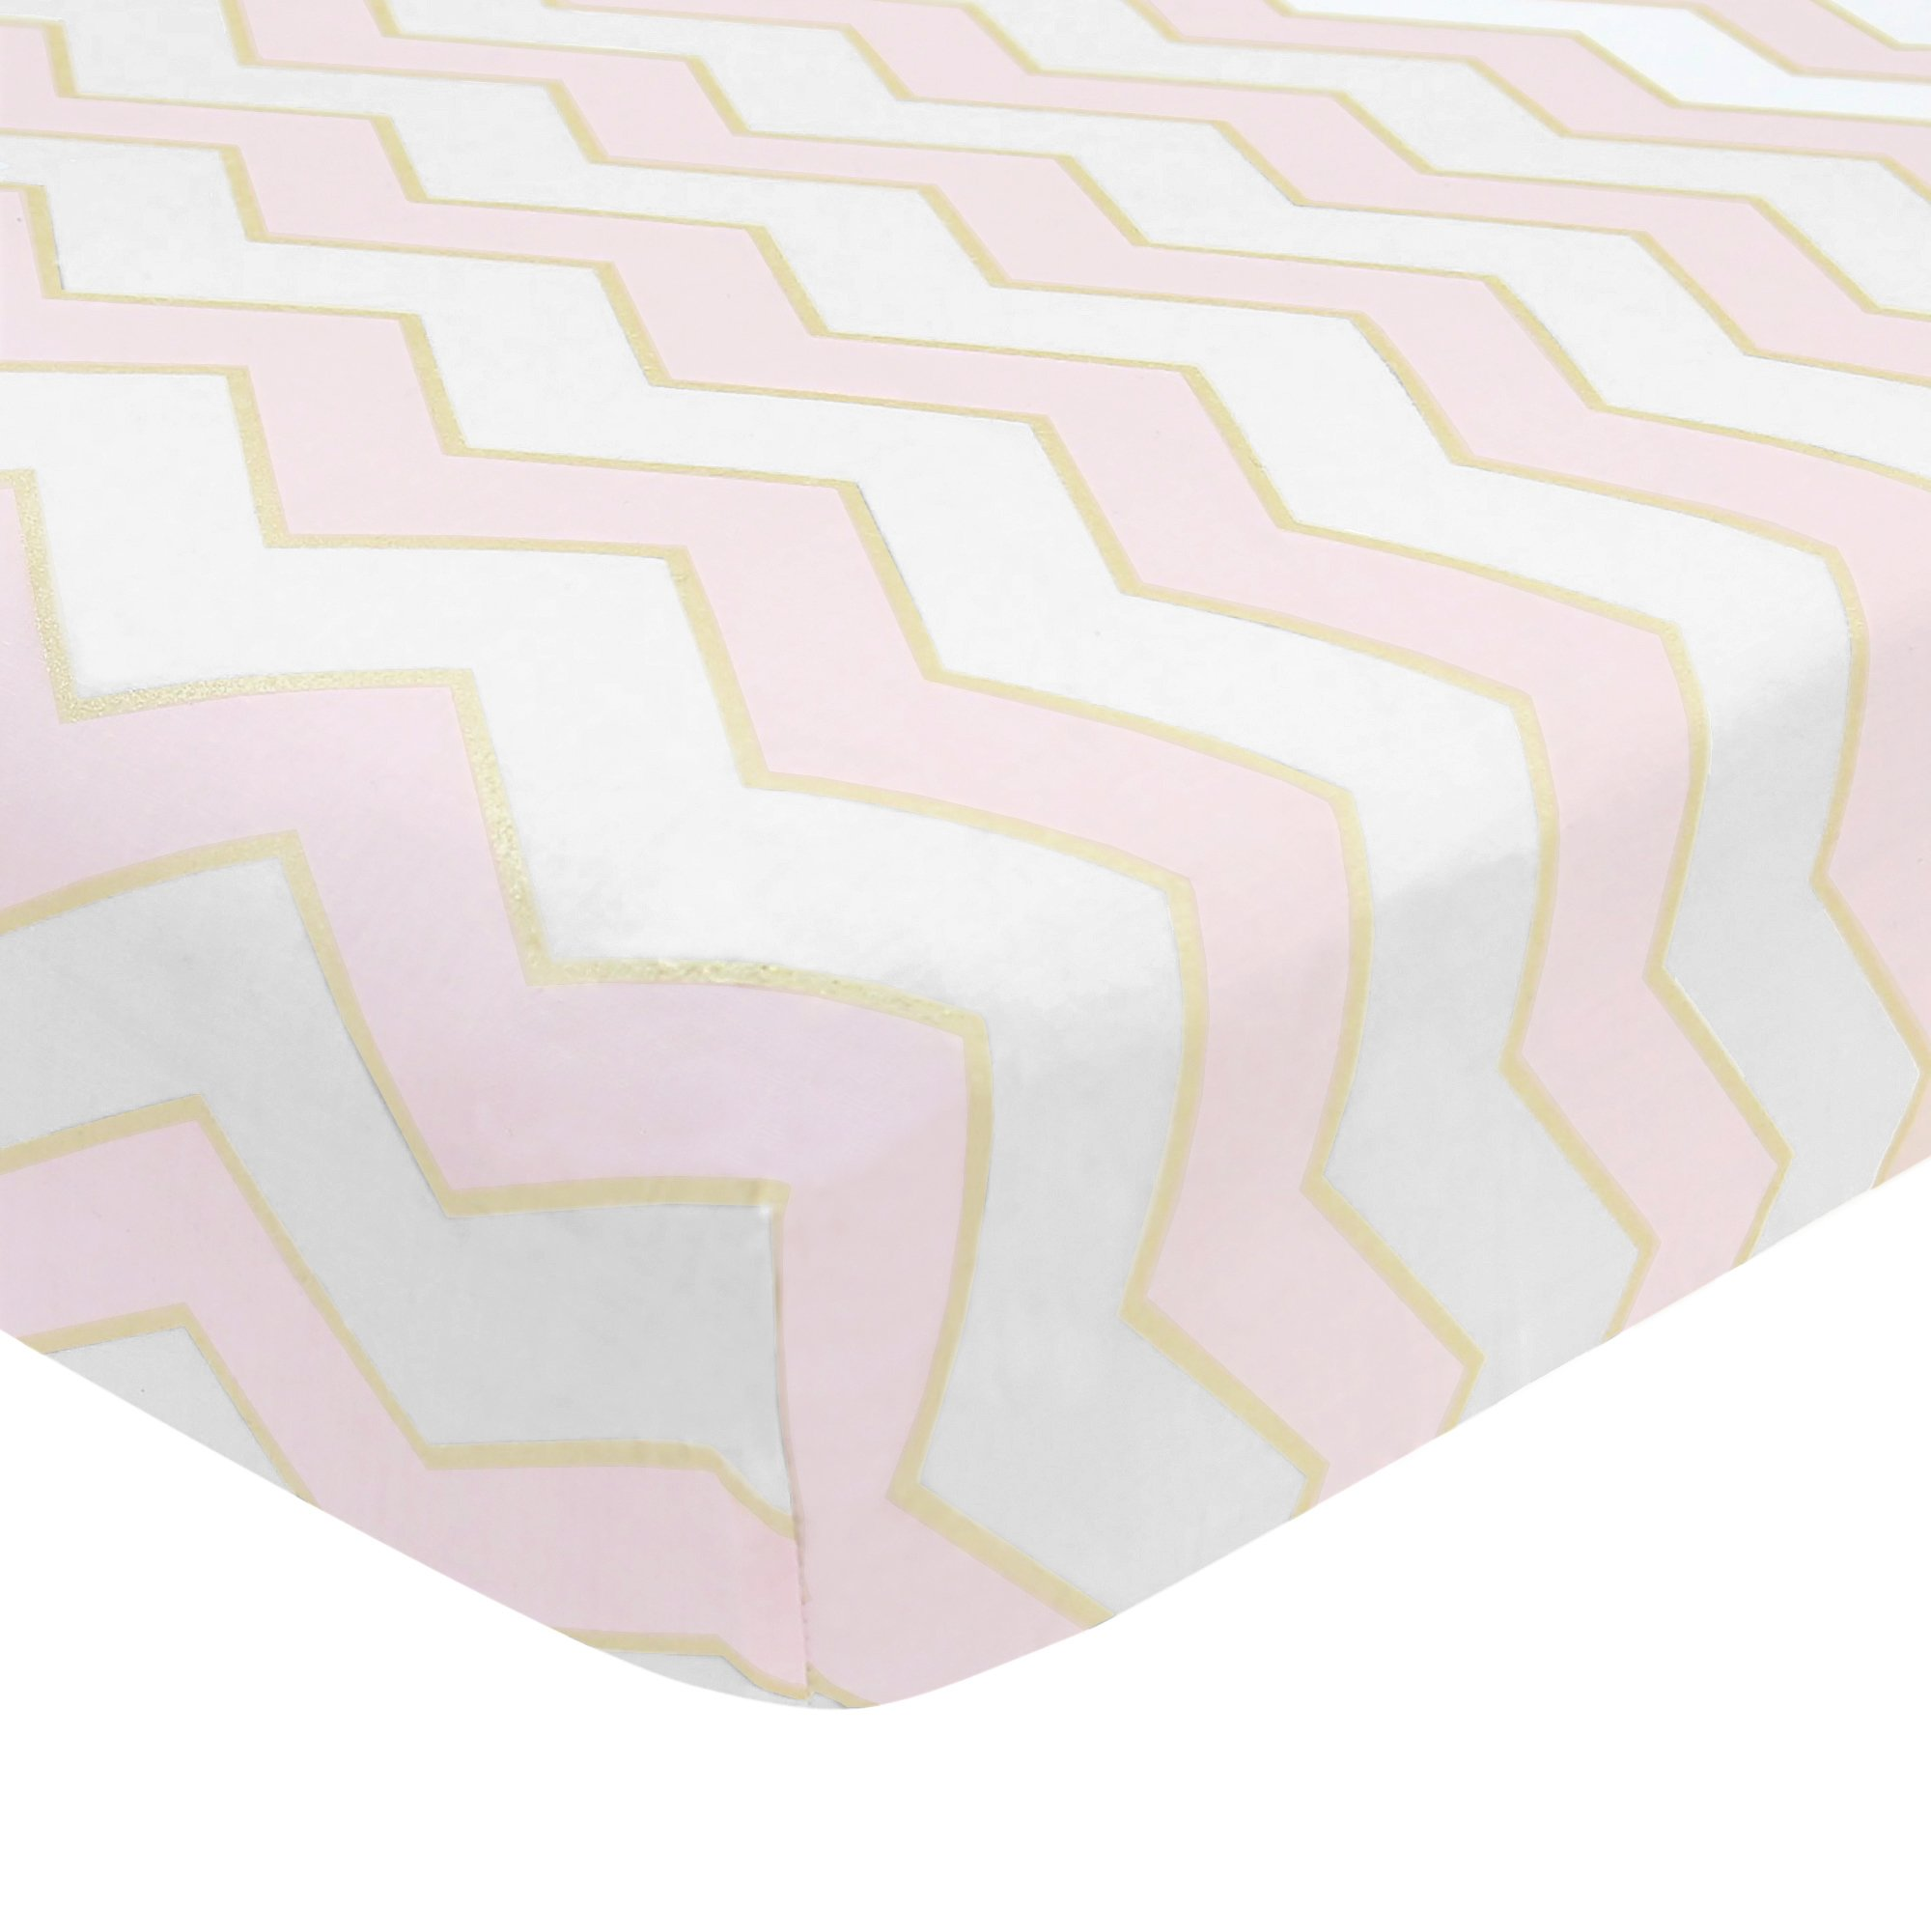 Lambs & Ivy Baby Love Pink/White/Gold 100% Cotton Chevron Fitted Crib Sheet